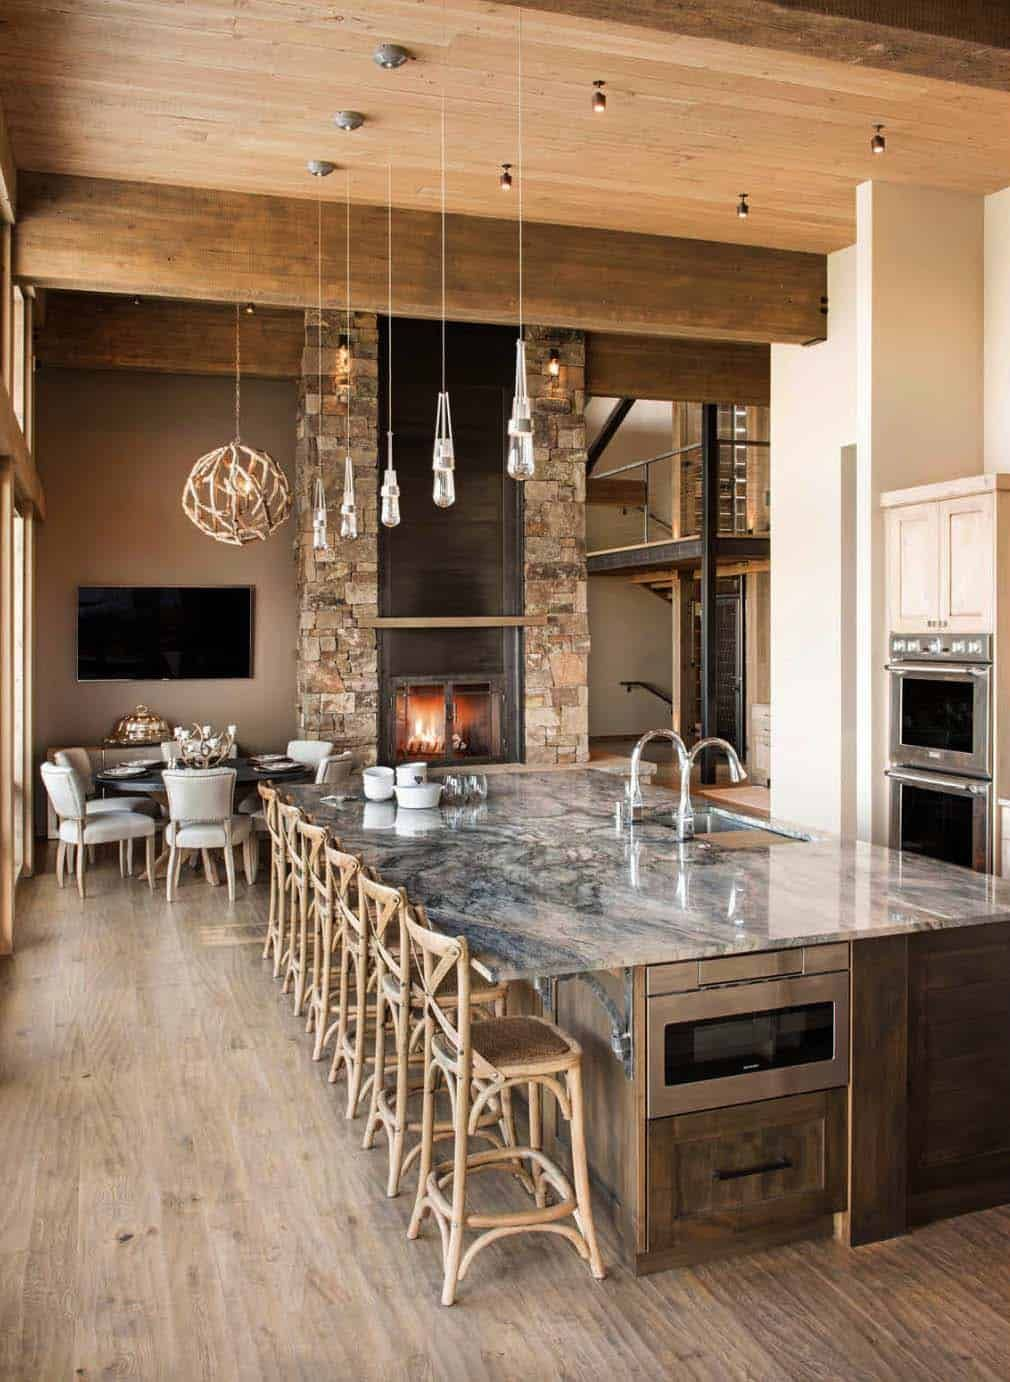 40 Unbelievable Rustic Kitchen Design Ideas To Steal #rustickitchendesigns